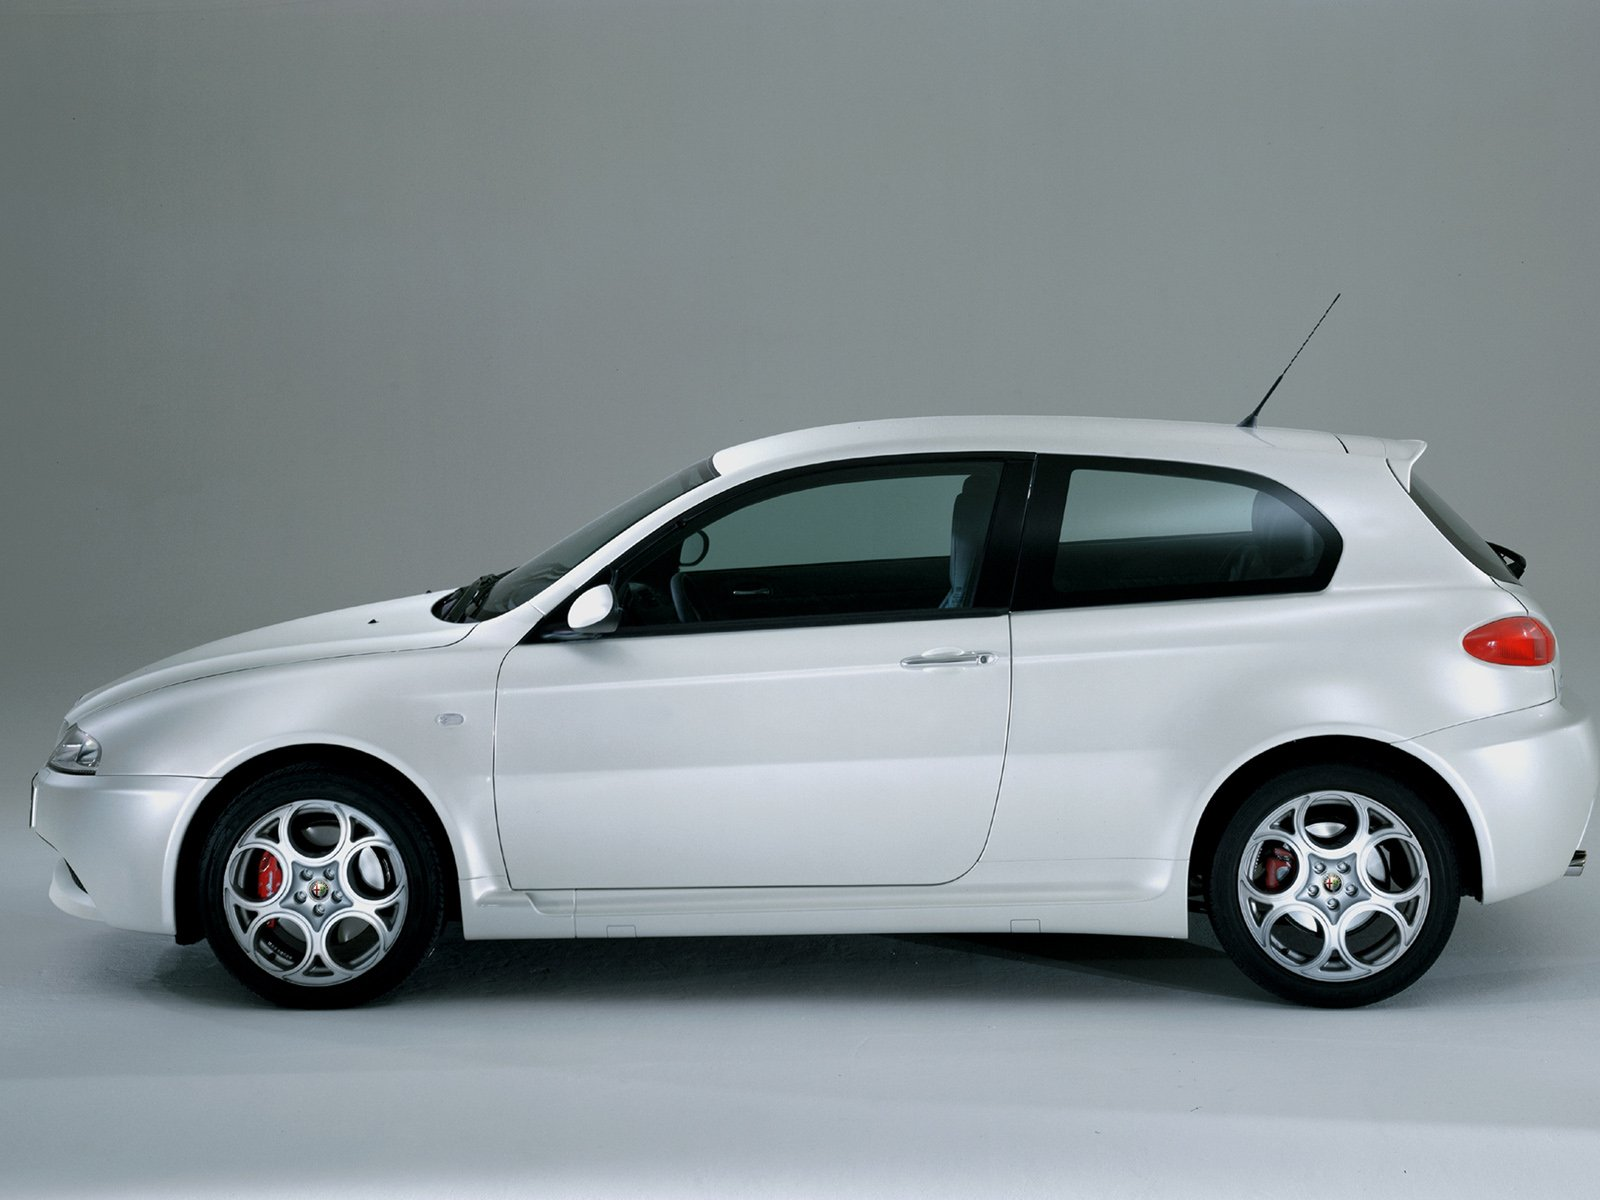 Alfa Romeo 147 Gta Picture 9146 Alfa Romeo Photo Gallery Carsbase Com